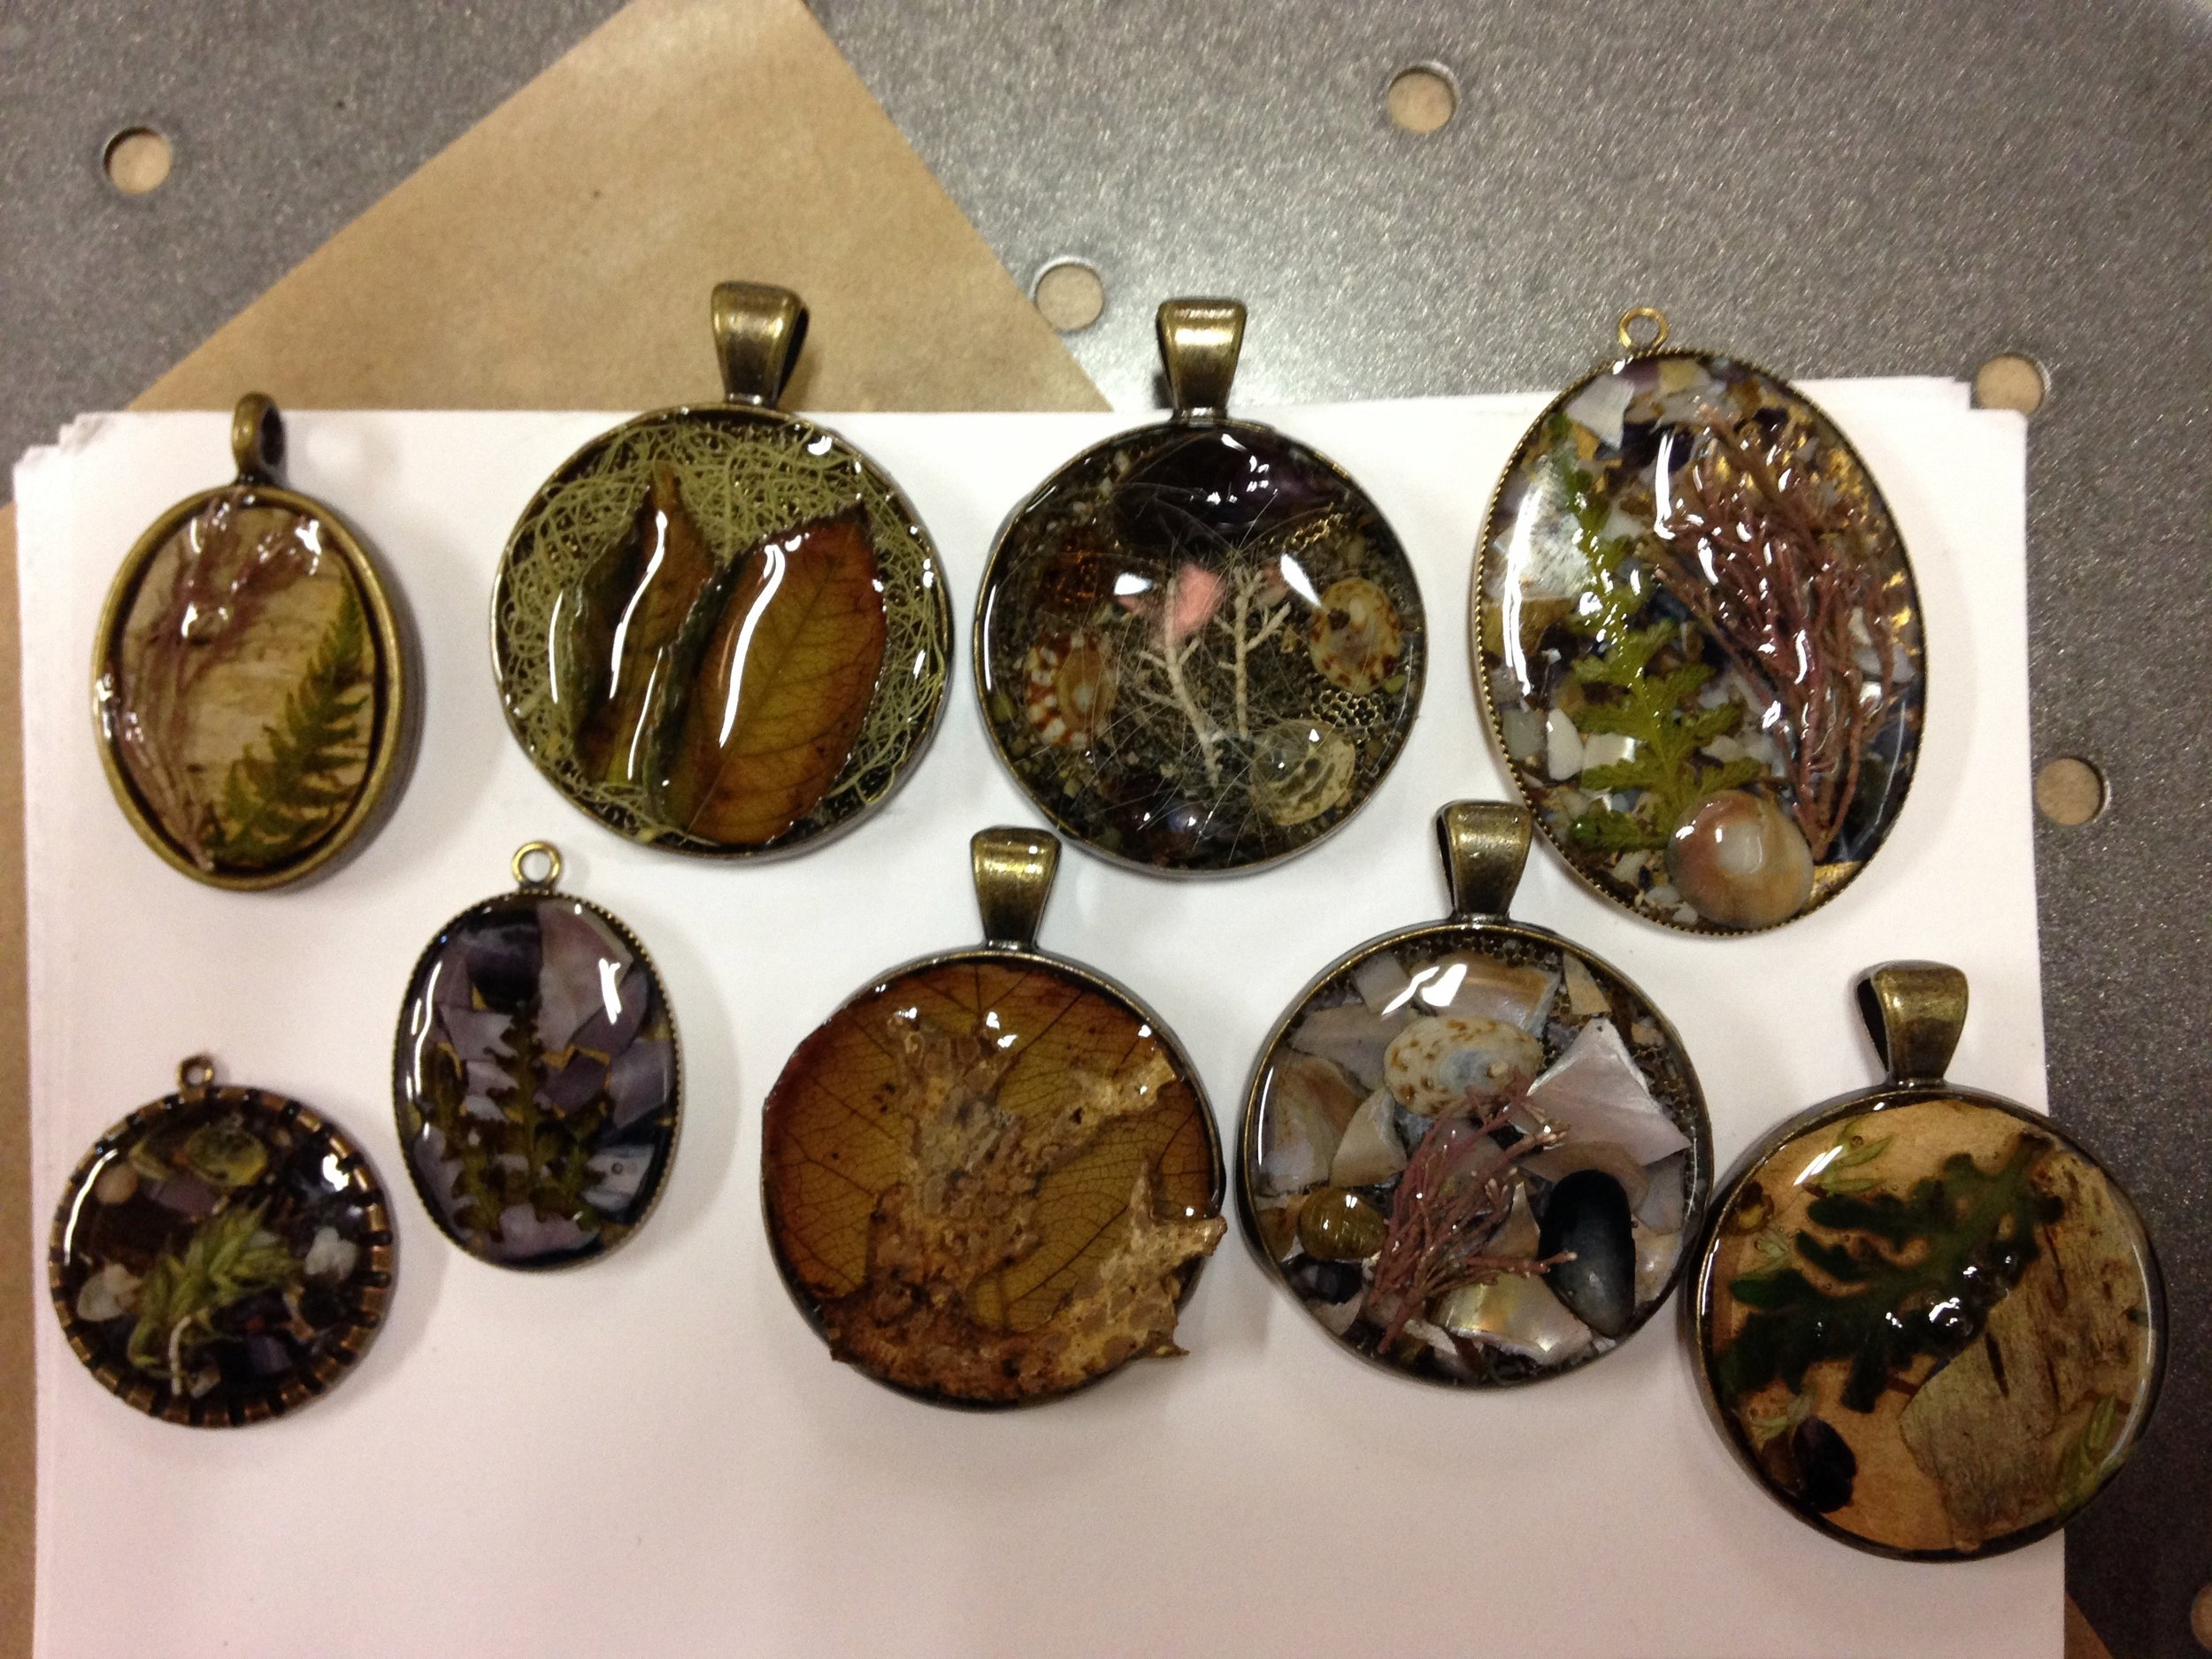 A few of the lovely pendants crafted at our latest Never-2-Old workshop!